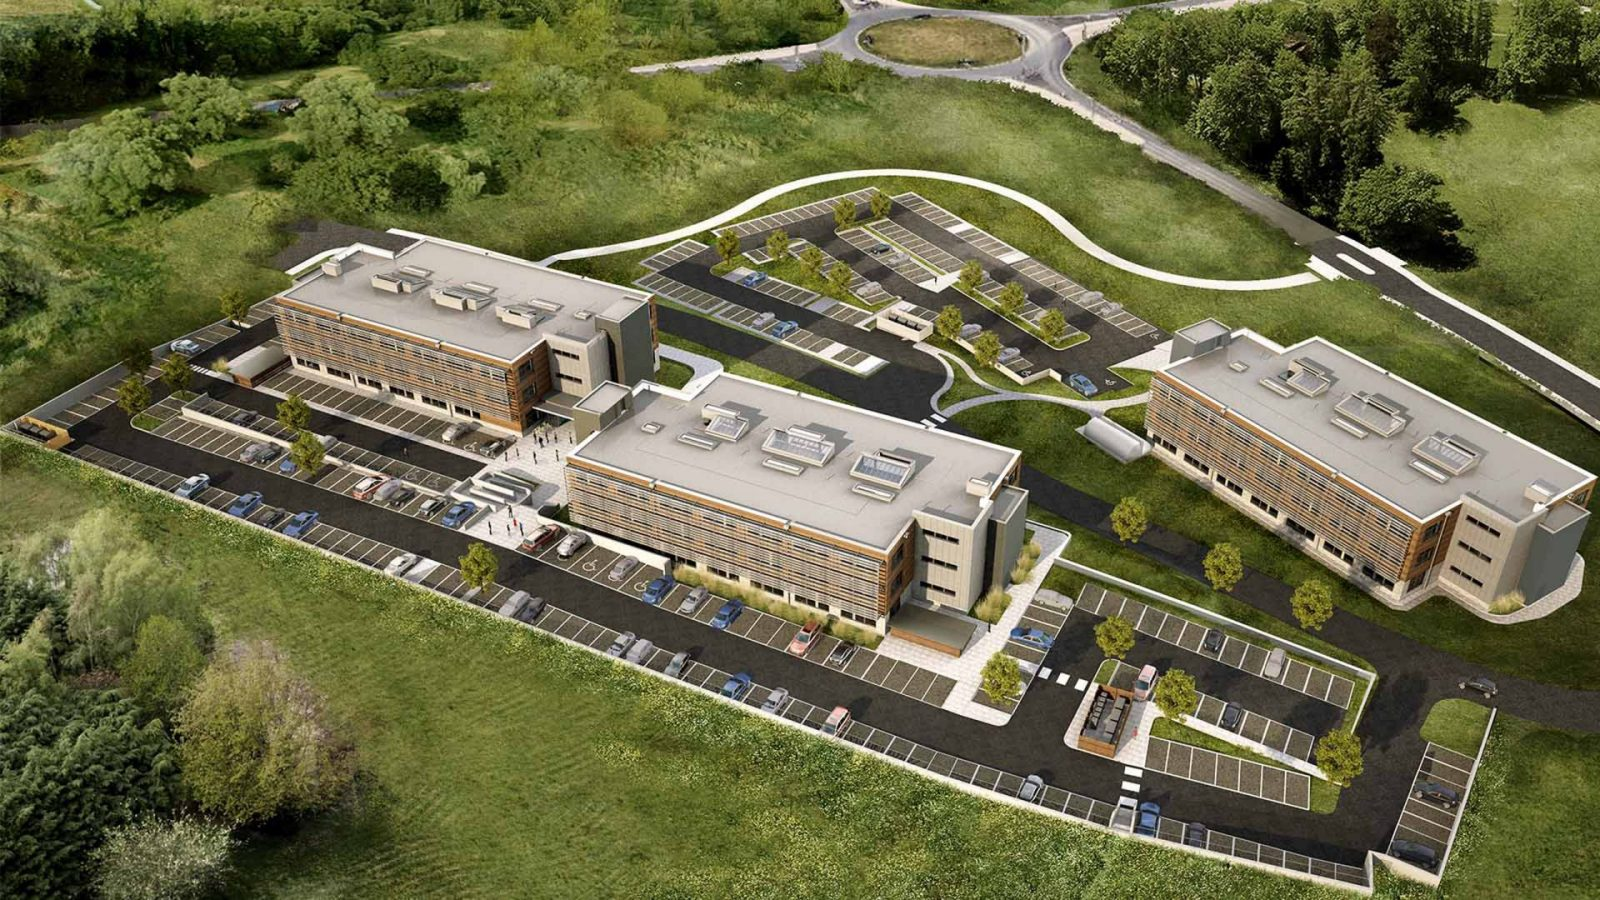 Bex Hill sussex business park offices architects jerseyarchitecture1